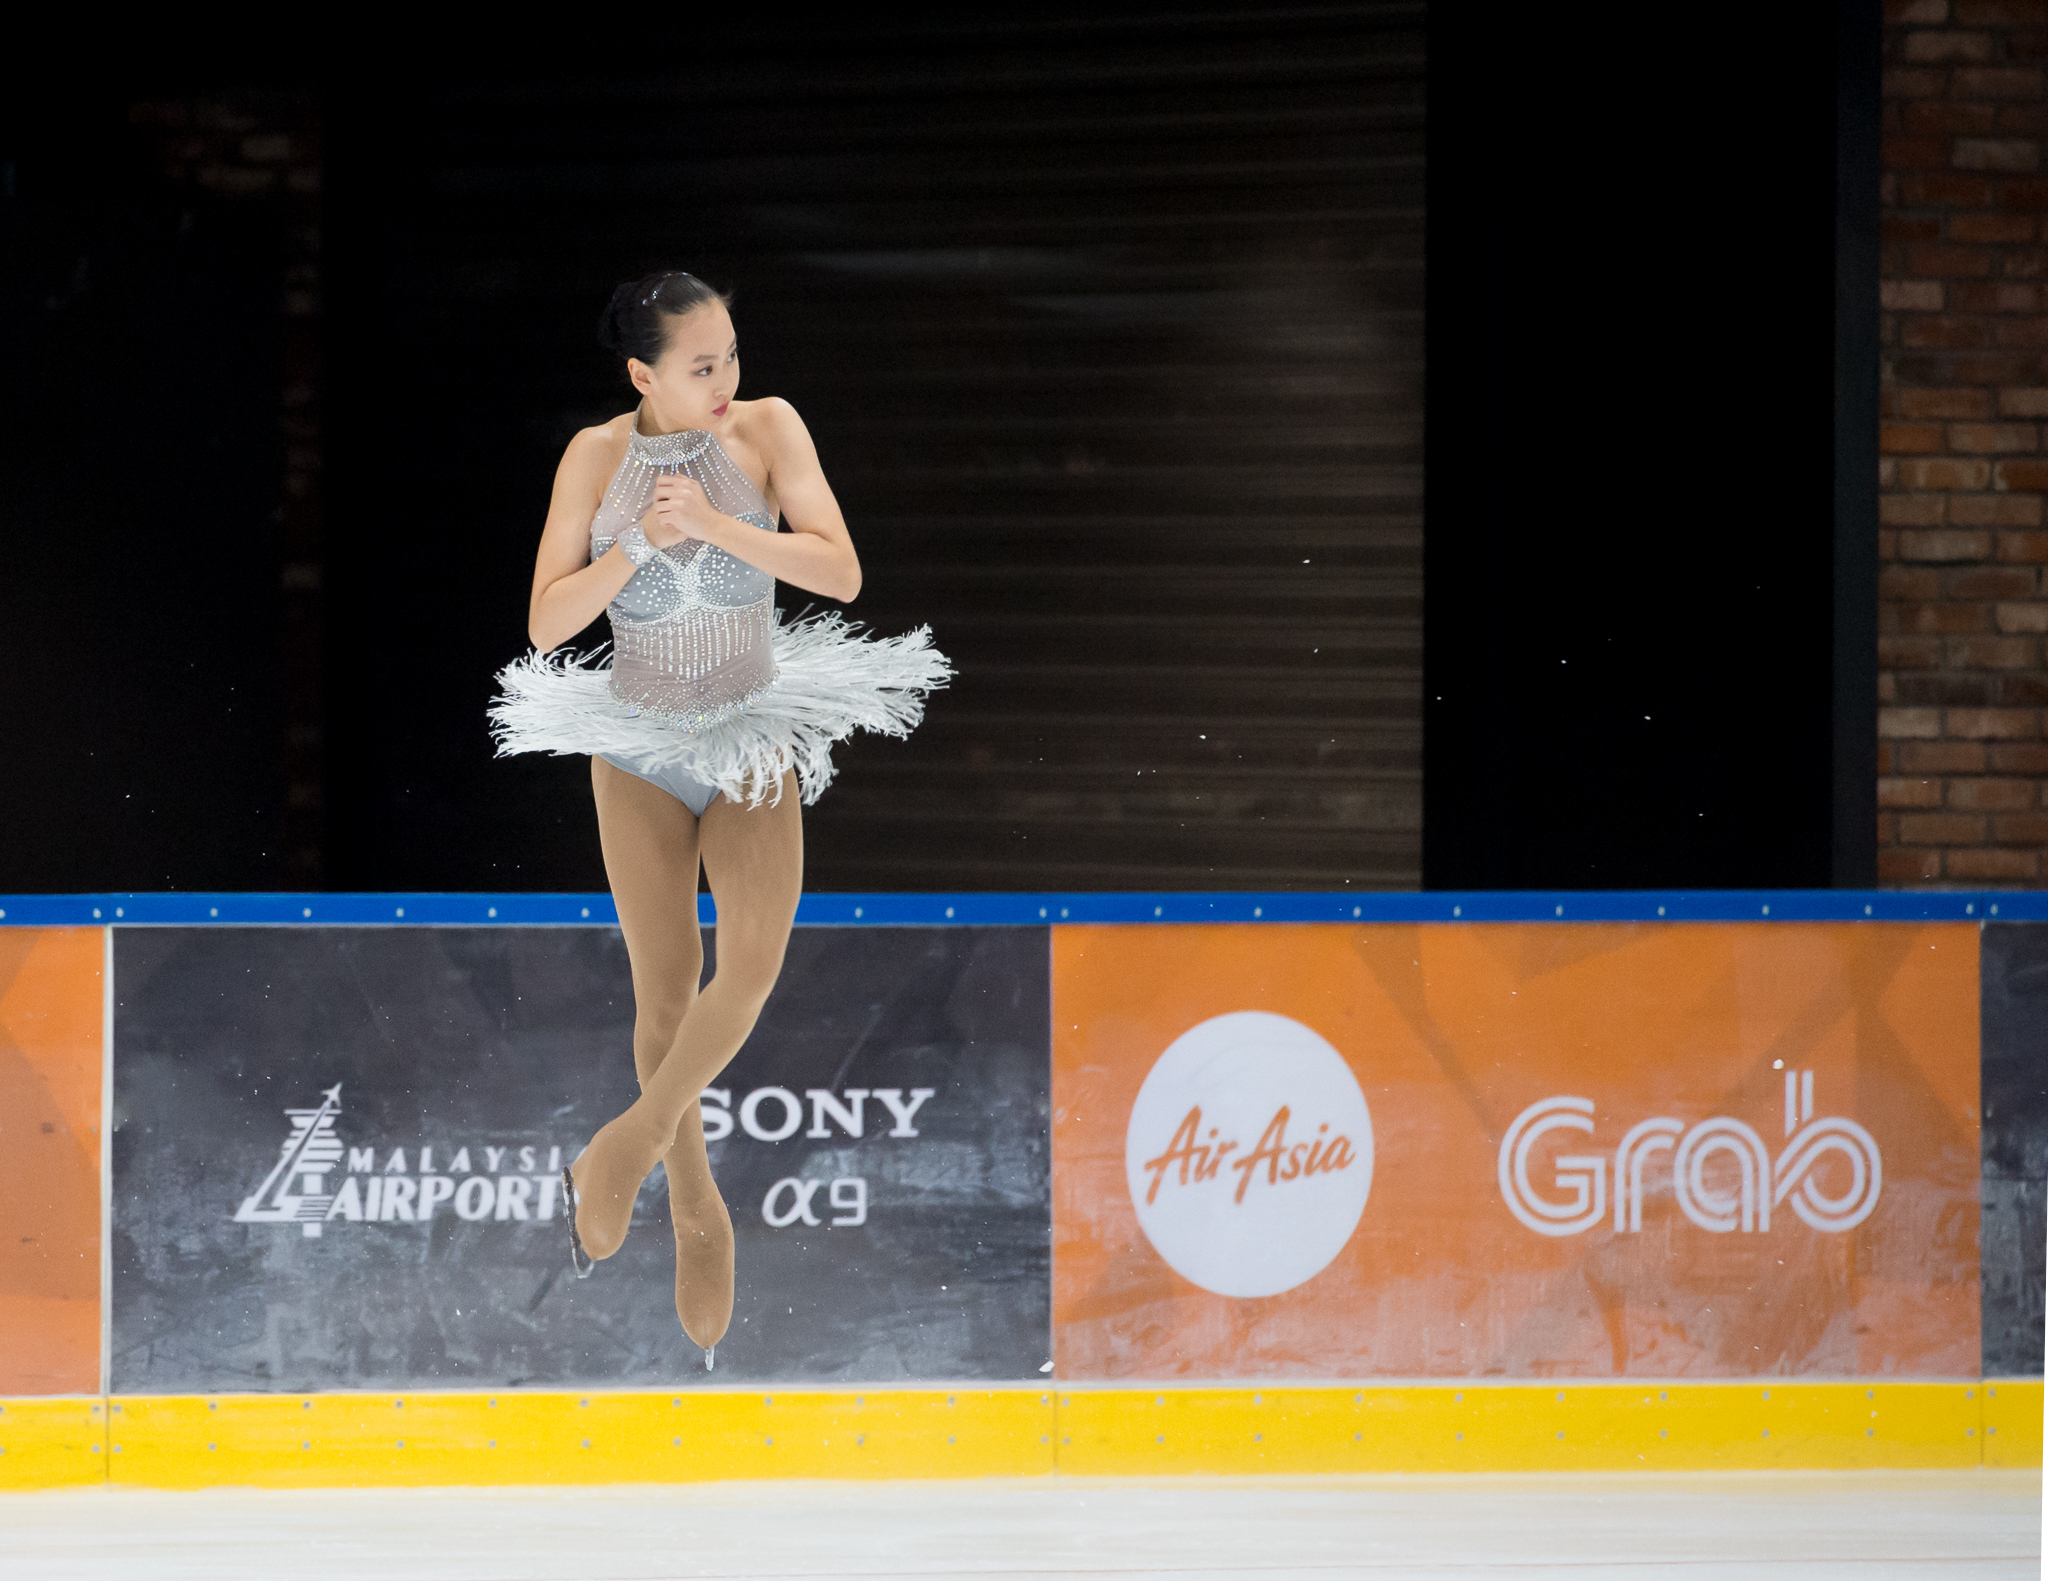 A Singaporean figure skater in action during the SEA Games at the Empire City Skating Rink.